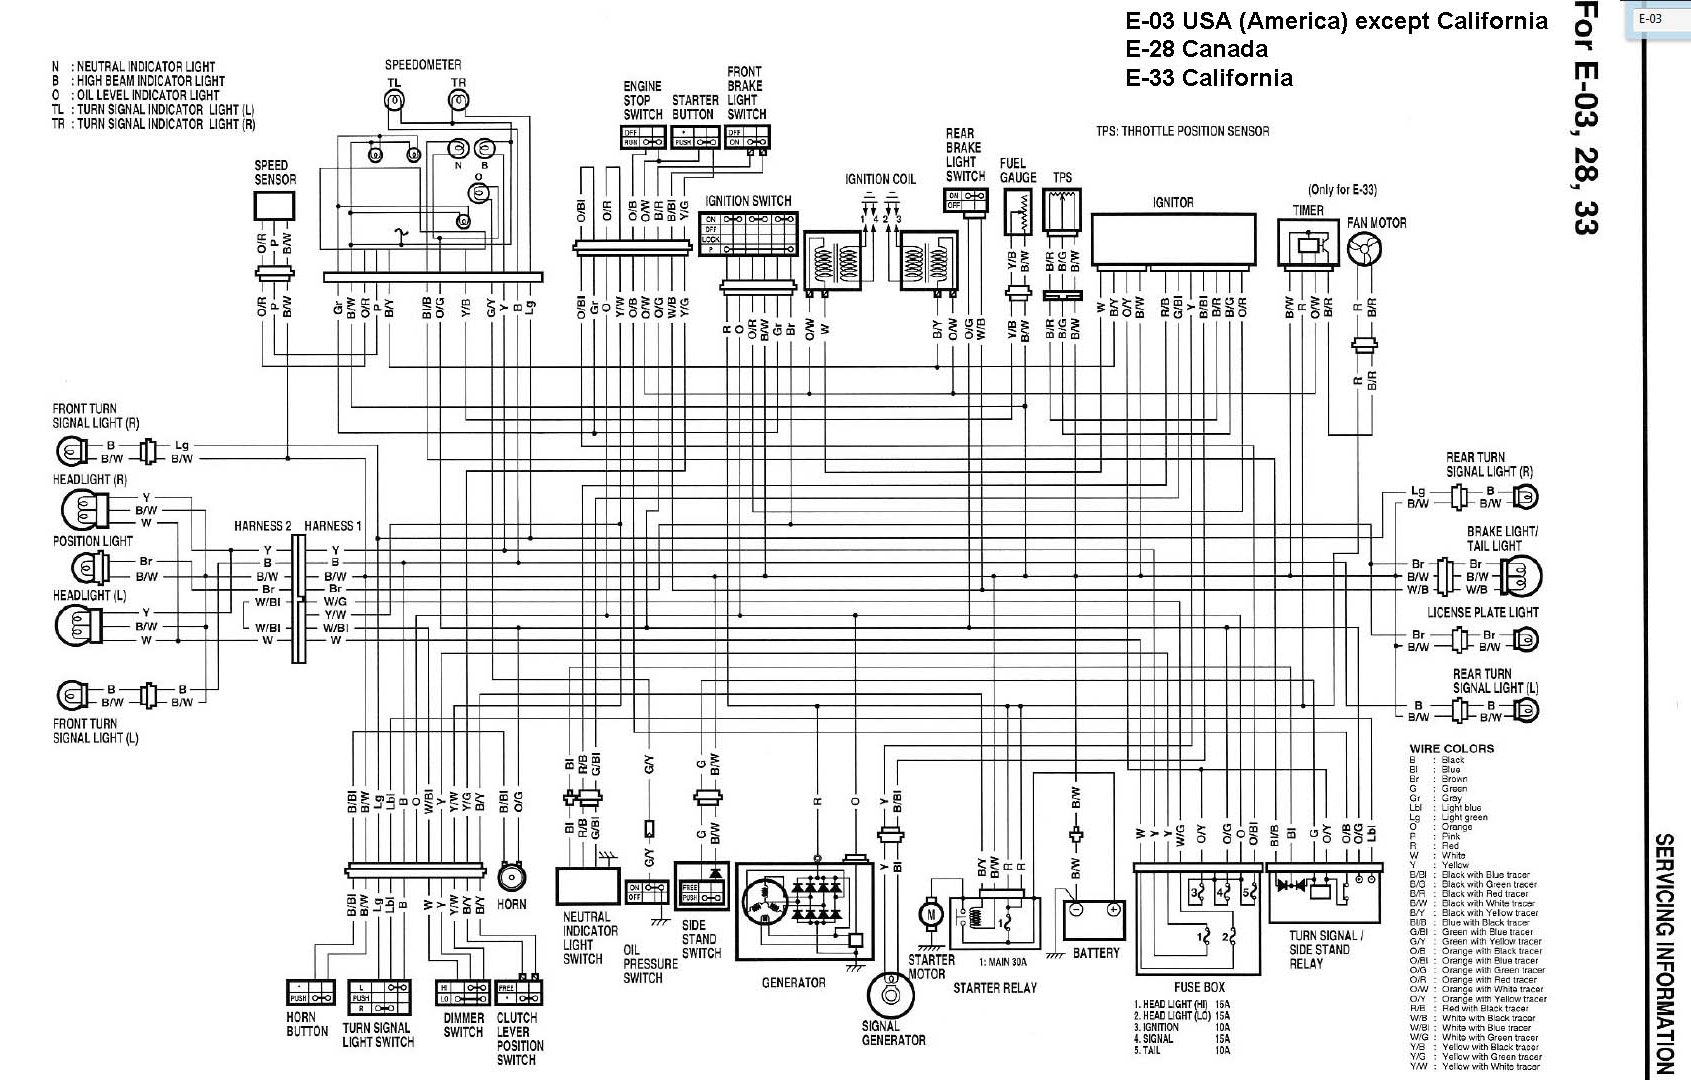 suzuki gsxf katana 600f 750f 1100f skhema elektroprovodki wiring diagram 4?resized665%2C425 suzuki gsxr 750 wiring diagram suzuki gsxr 750 headlights \u2022 free 2003 suzuki katana 600 wiring diagram at virtualis.co